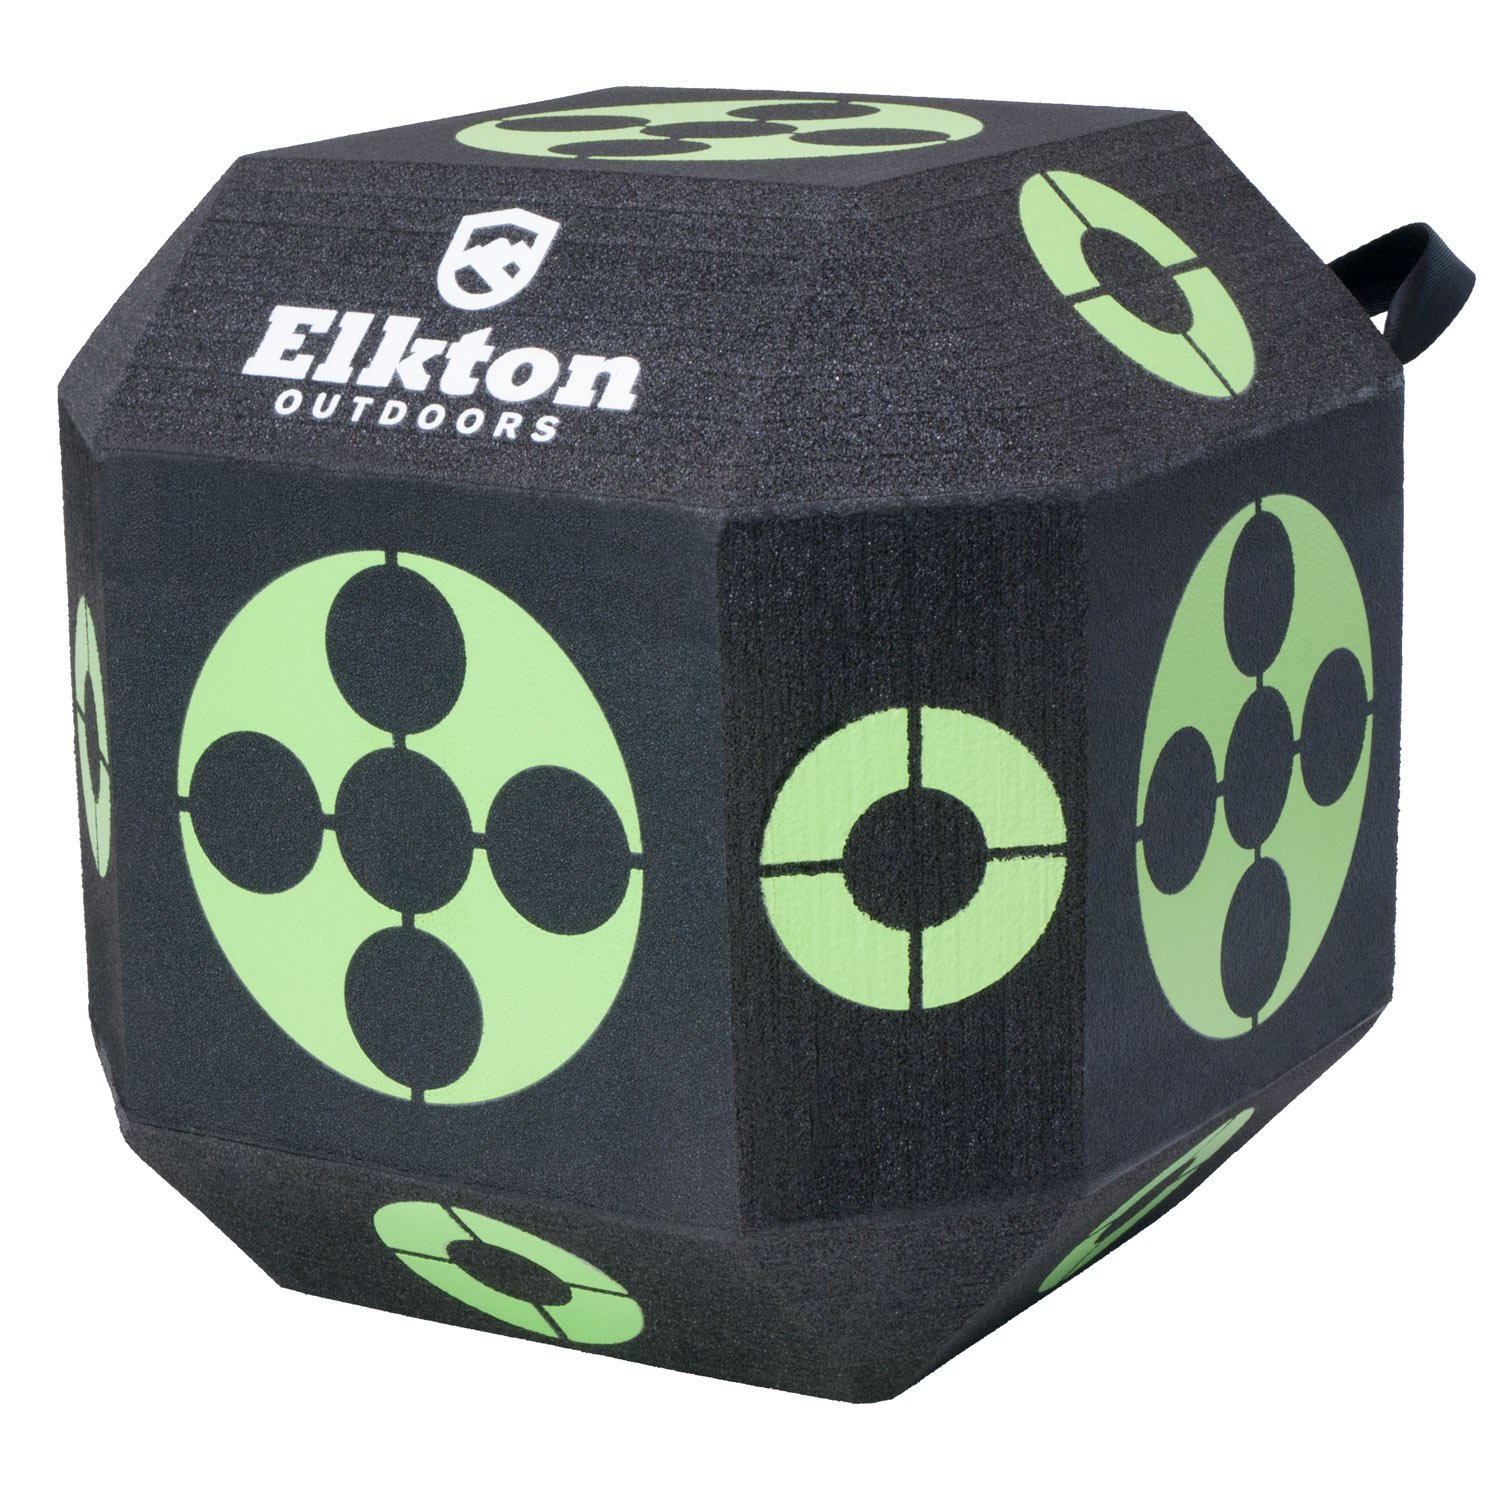 Elkton Outdoors 18-Sided 3D Cube Reusable Archery Target Constructed With Rapid Self Healing XPE Foam for all Arrow Types by Elkton Outdoors